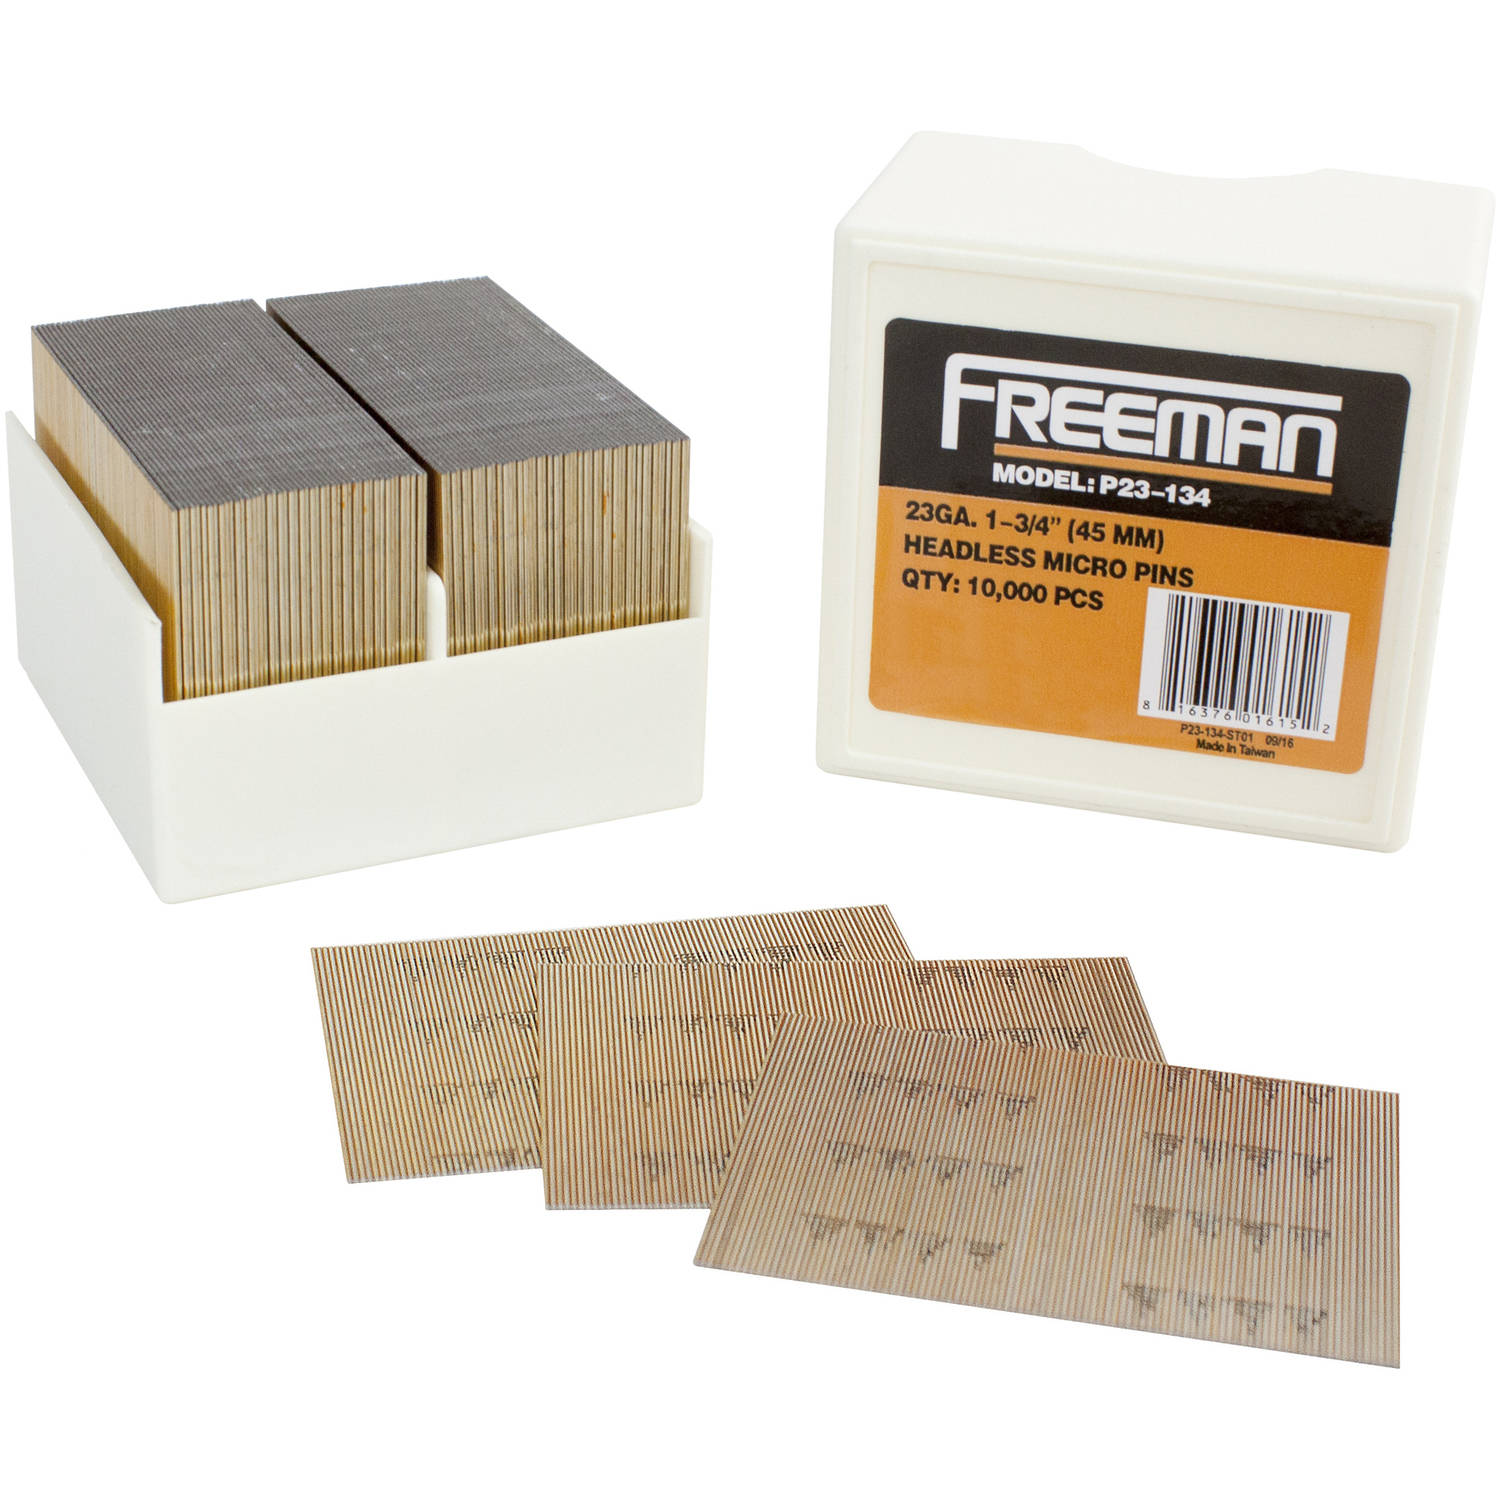 "Freeman P23-134 23-Gauge Glue Collated 1-3/4"" Pin Nails"